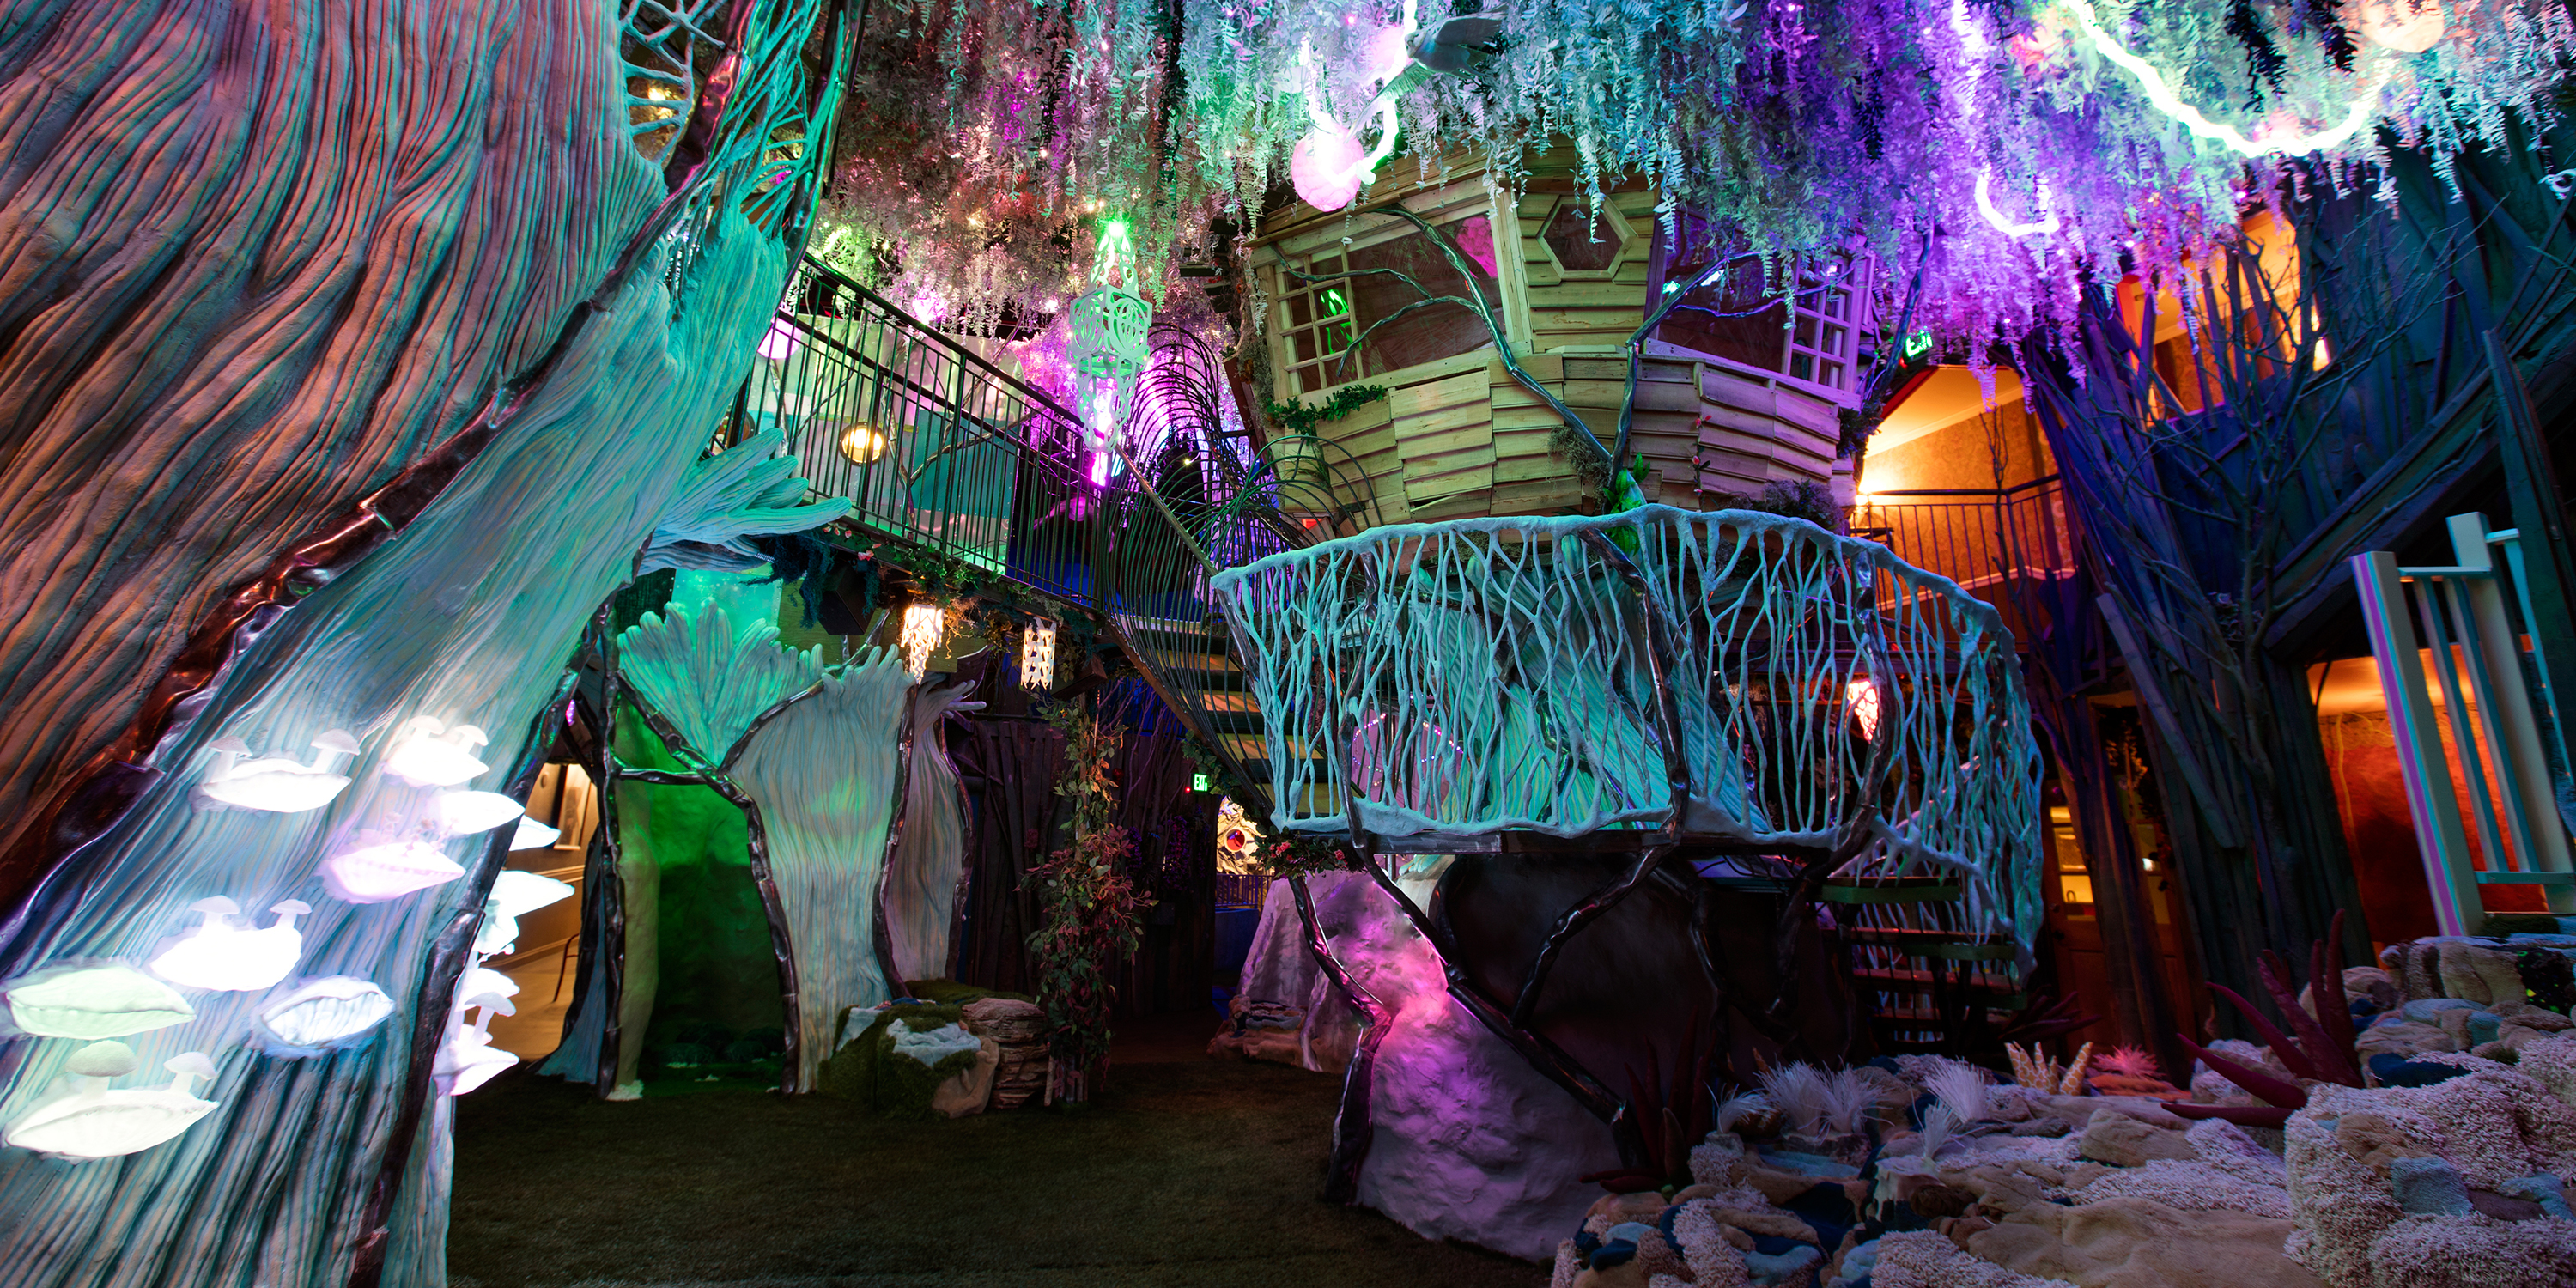 Meow Wolf: Inside the Insane Psych Art Collective Taking Over the